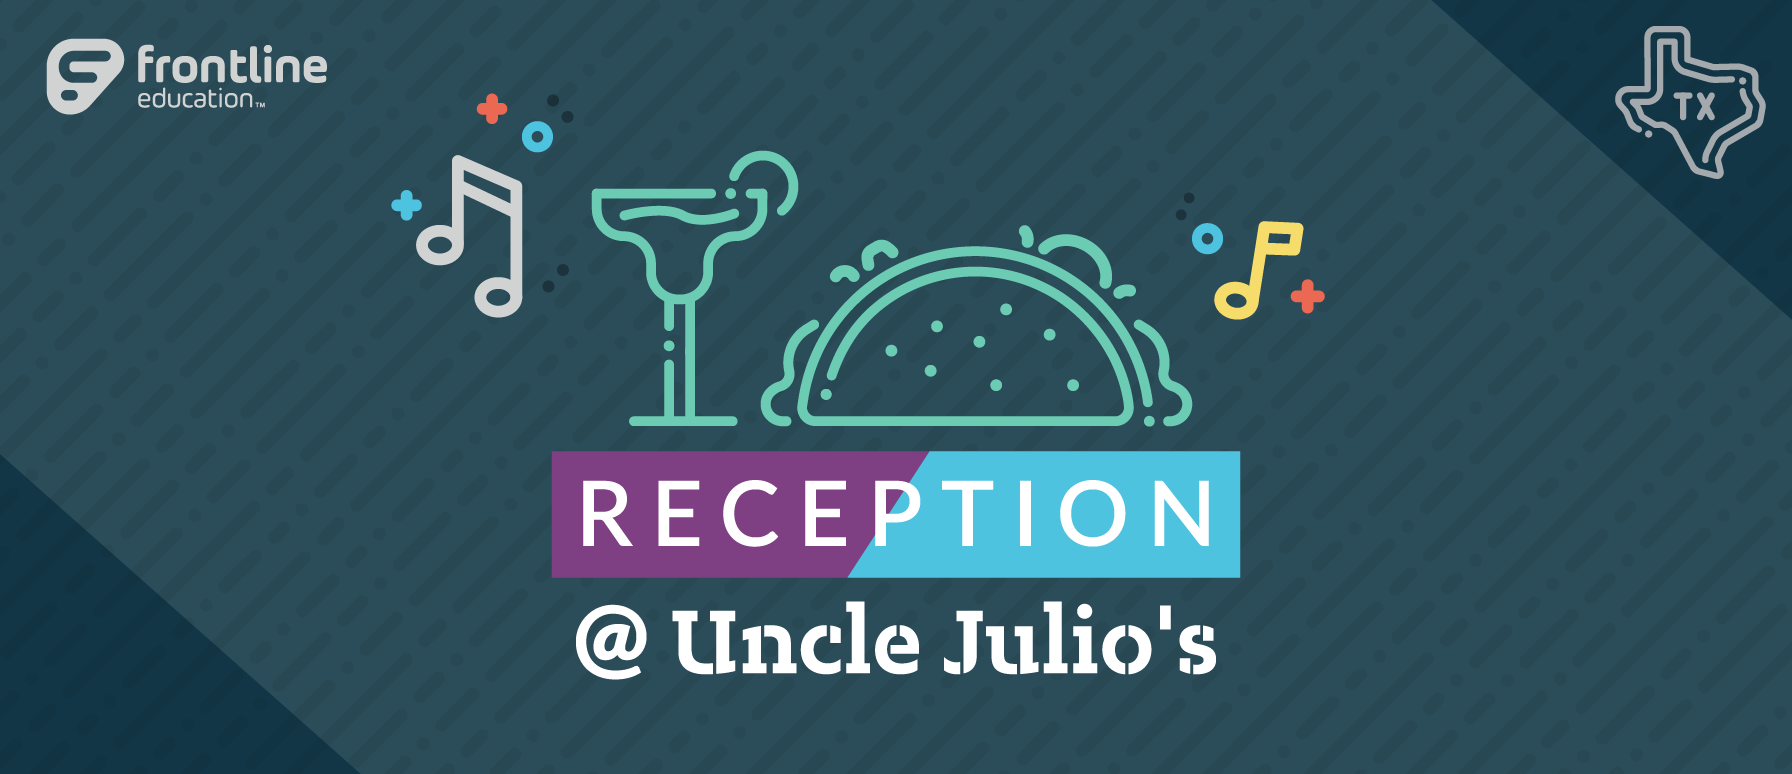 Frontline Education Reception at Uncle Julio's